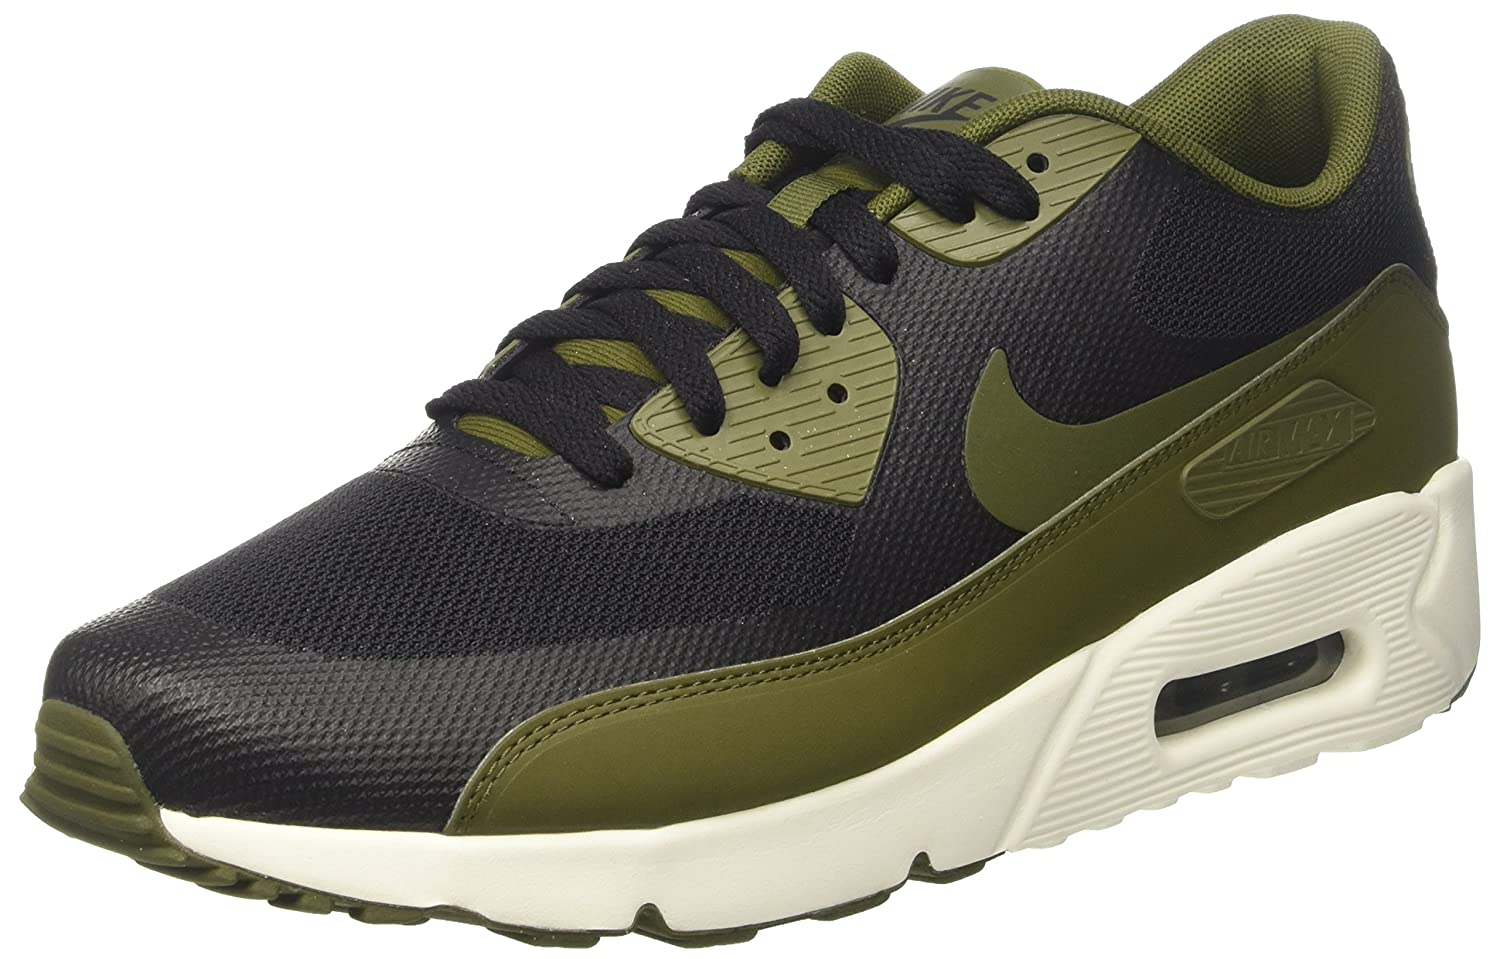 5883a86ed3 Nike Air Max 90 Ultra 2.0 Essential, Black/Legion Green ... nike